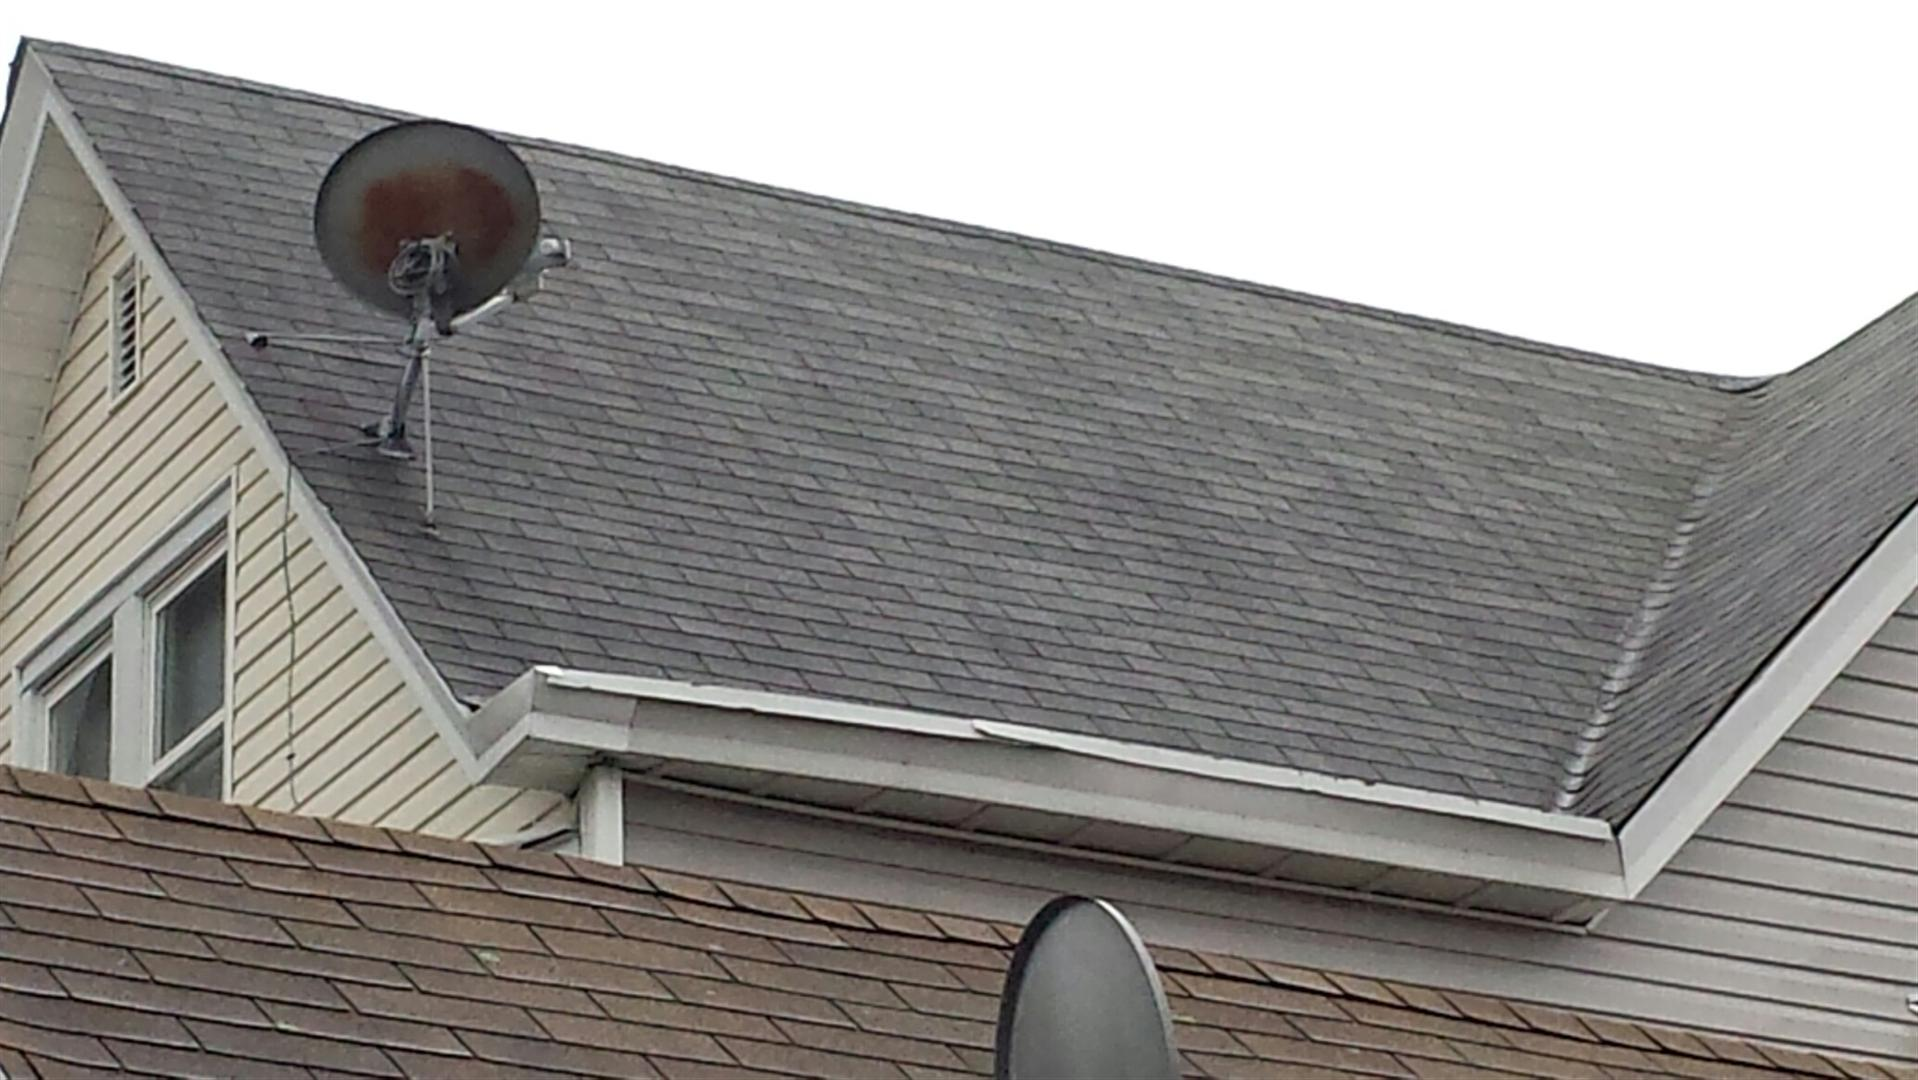 Clifton Nj Yankee Gutter And Roofing Shingles Replacement